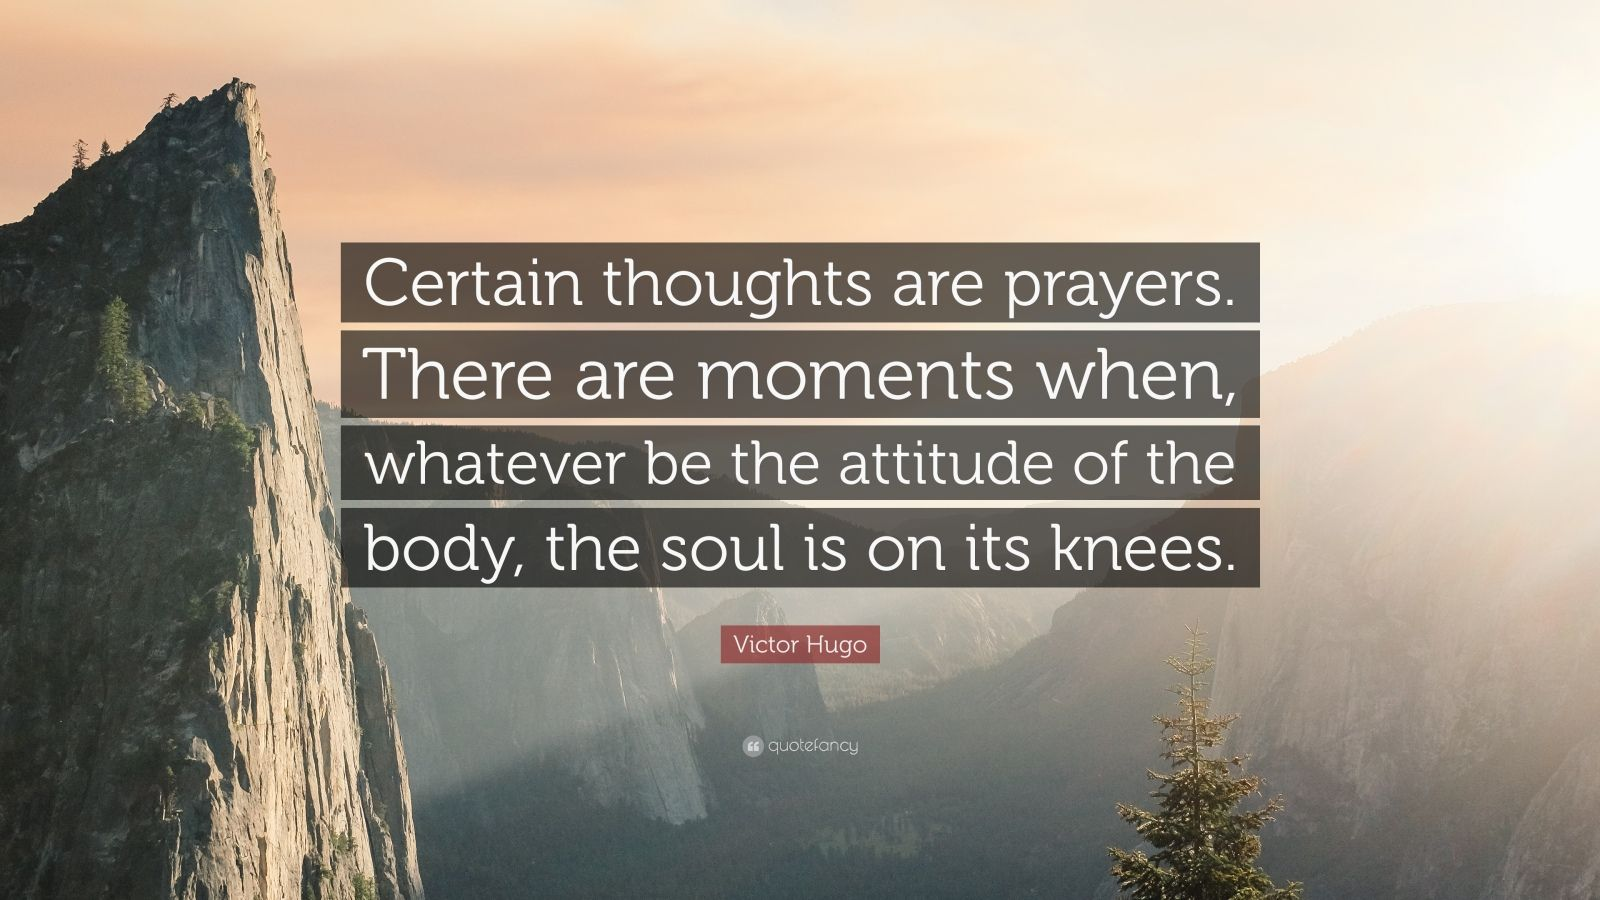 """Victor Hugo Quote: """"Certain thoughts are prayers. There are moments when, whatever be the attitude of the body, the soul is on its knees."""""""